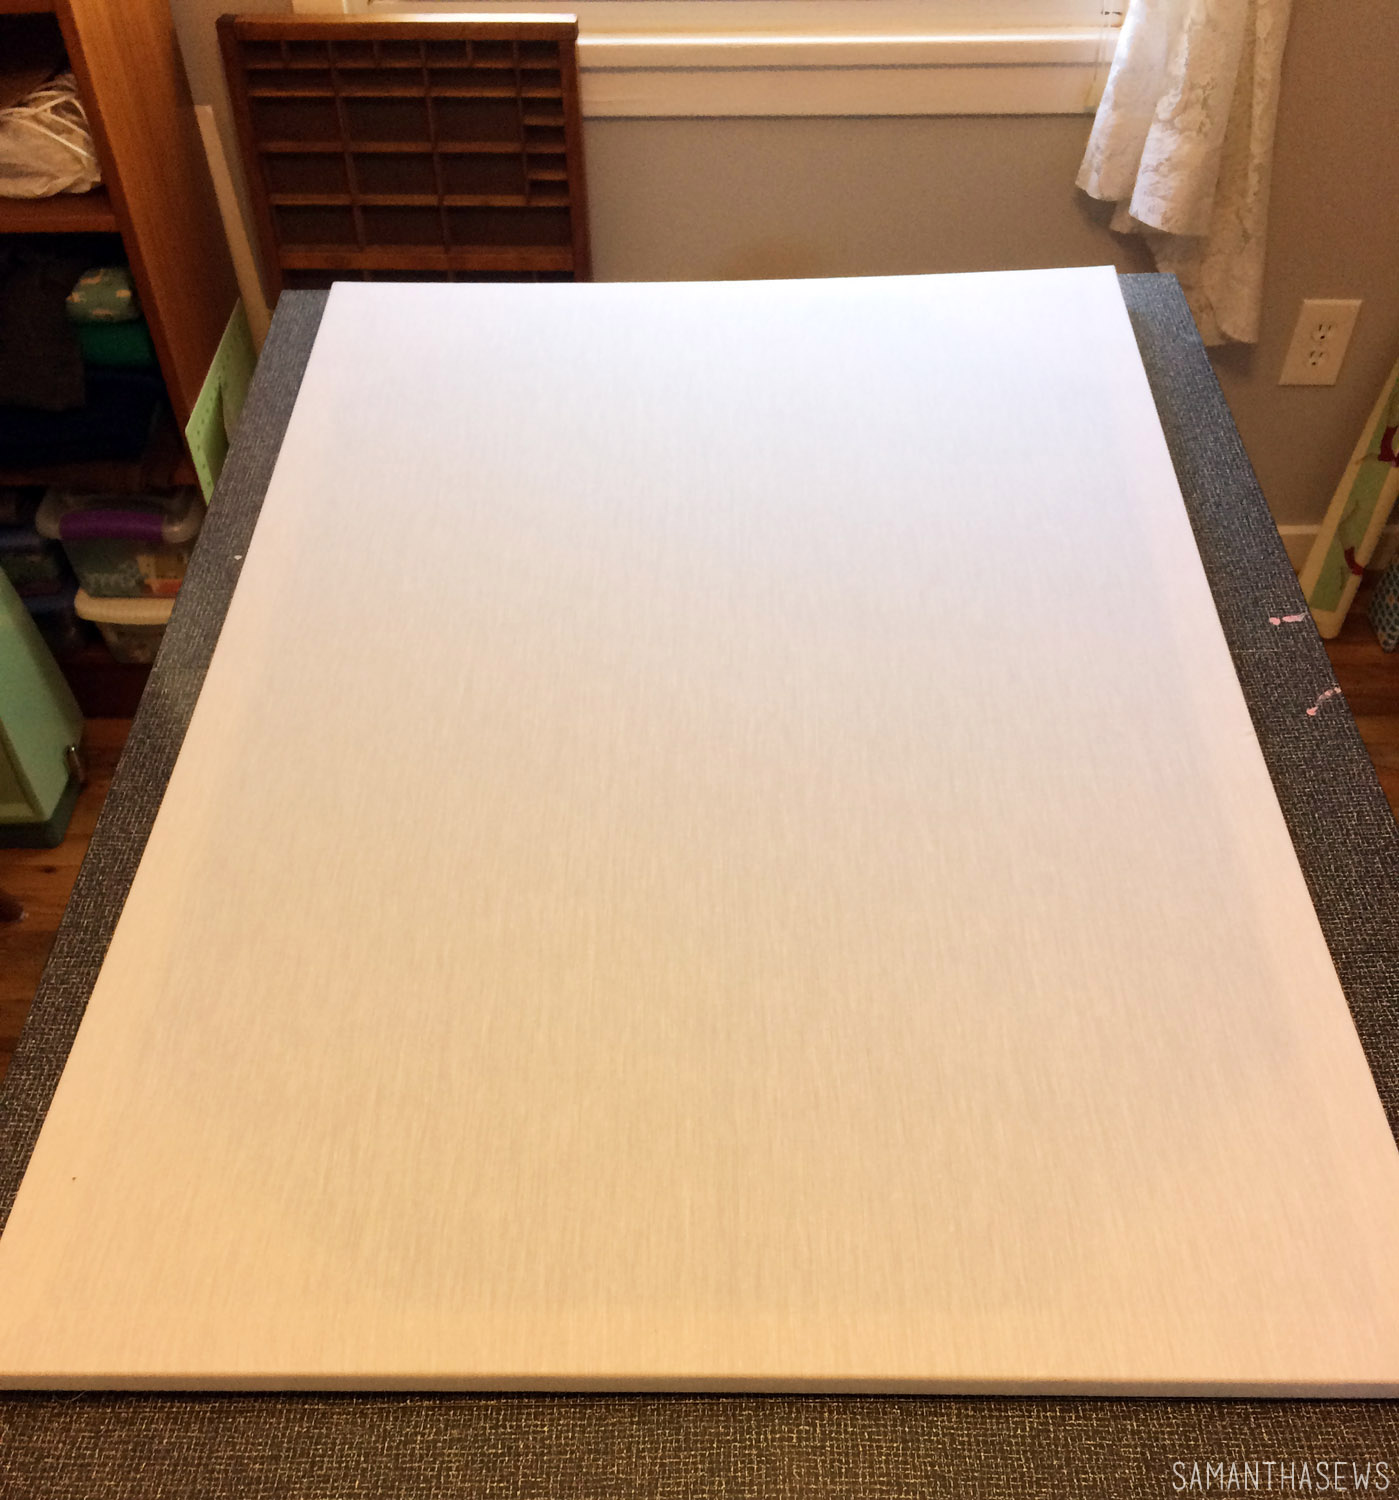 re-cover an ikea canvas for wall art